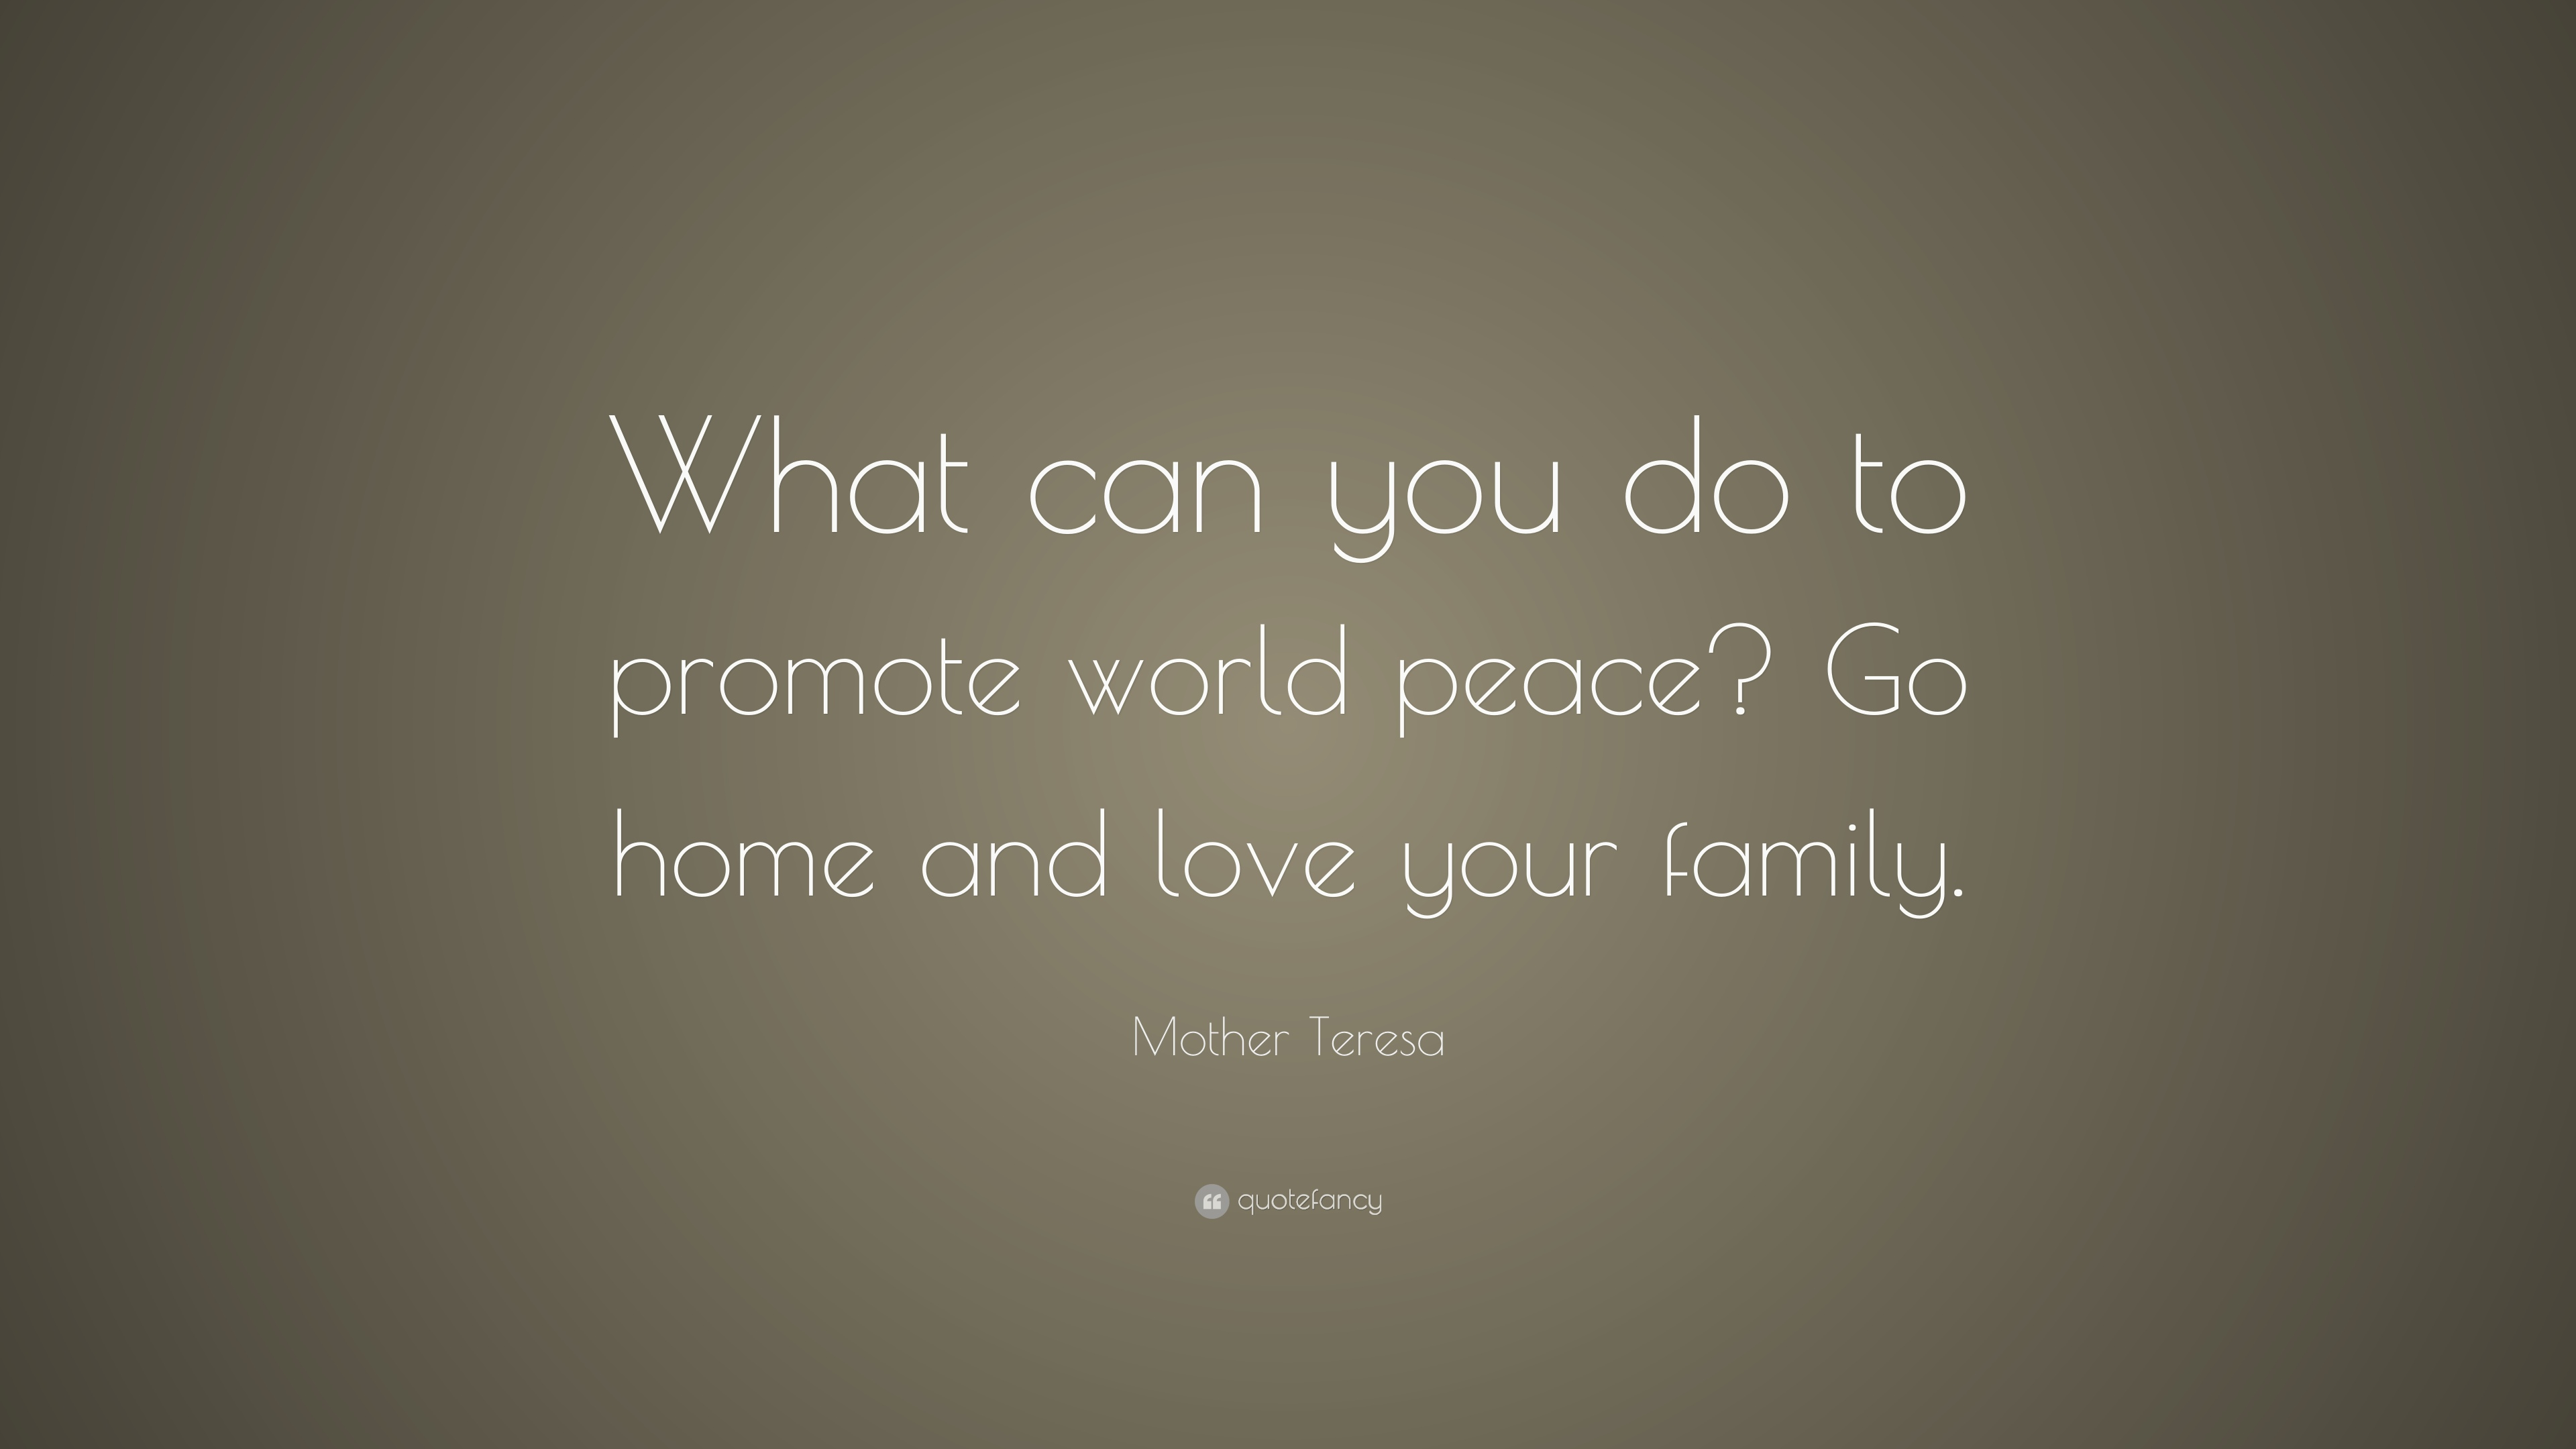 Peaceful Love Quotes Peace Love And Family Quotes What Can You Do To Promote World